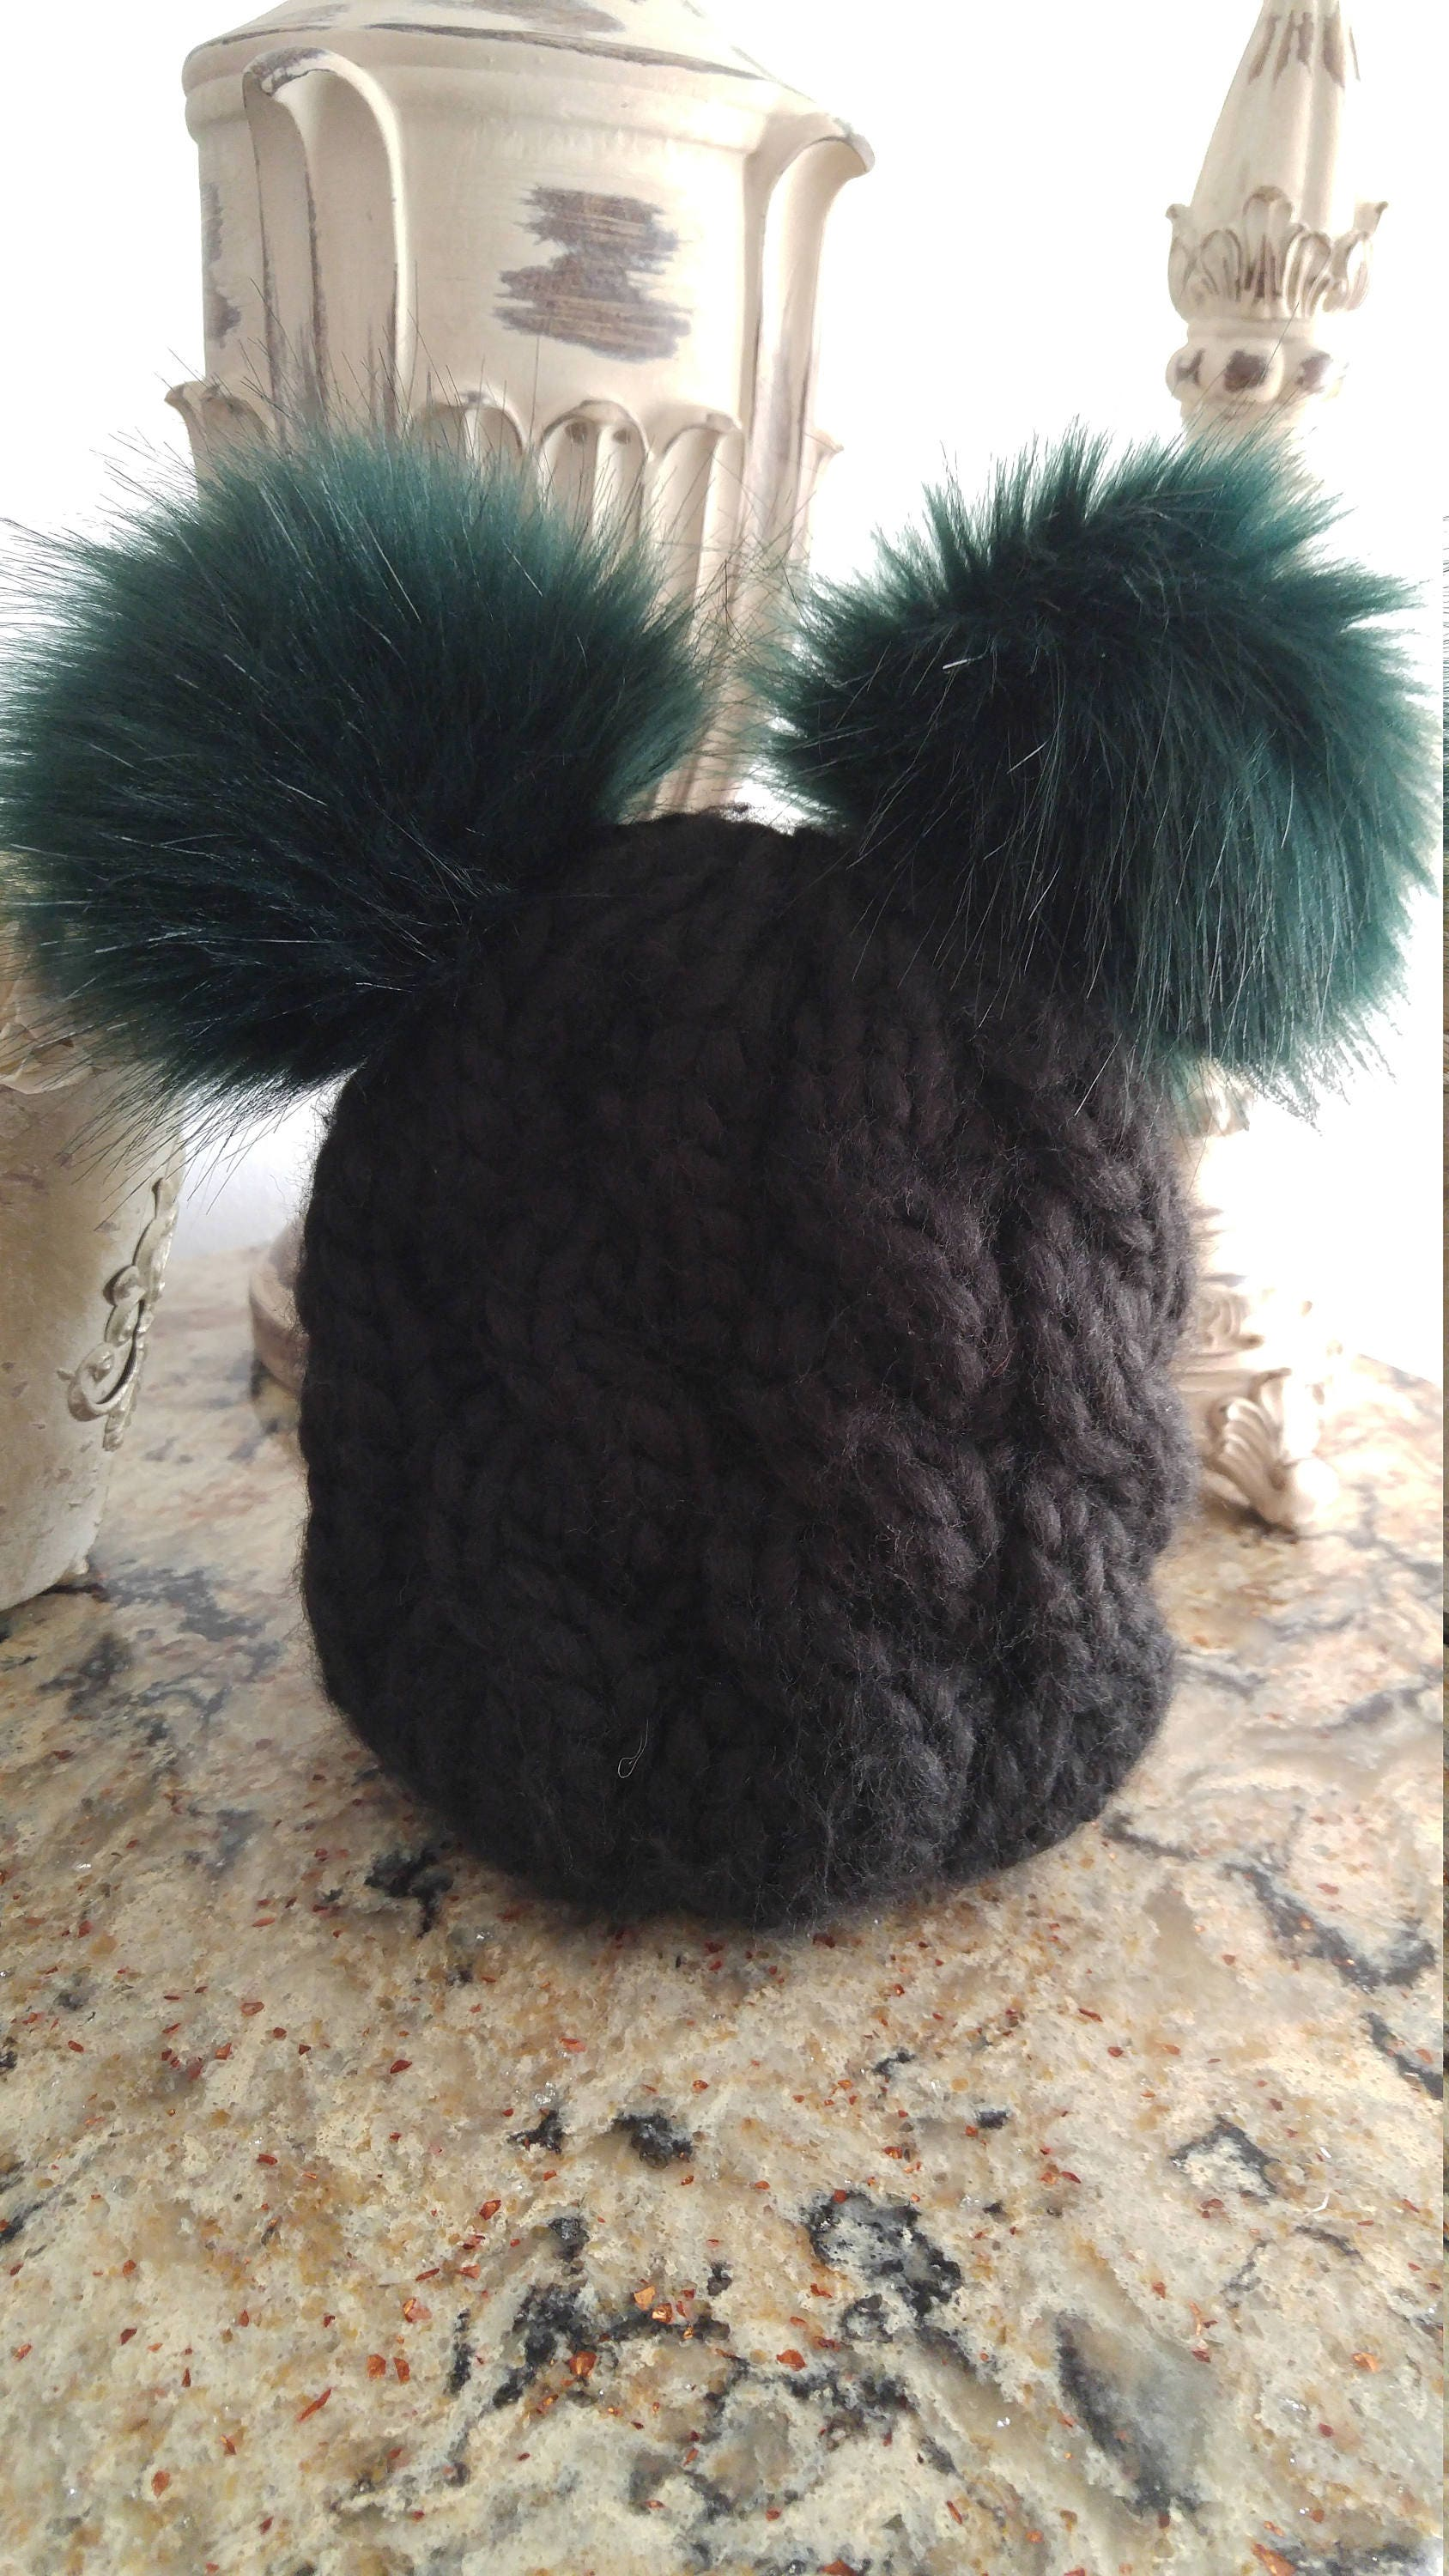 791f0900 Baby EAGLES Hat! Twice the fun - Double the trouble - with this Luxury Hand  Knit Eagles Hat - and not just 1 but 2 Pom Poms!